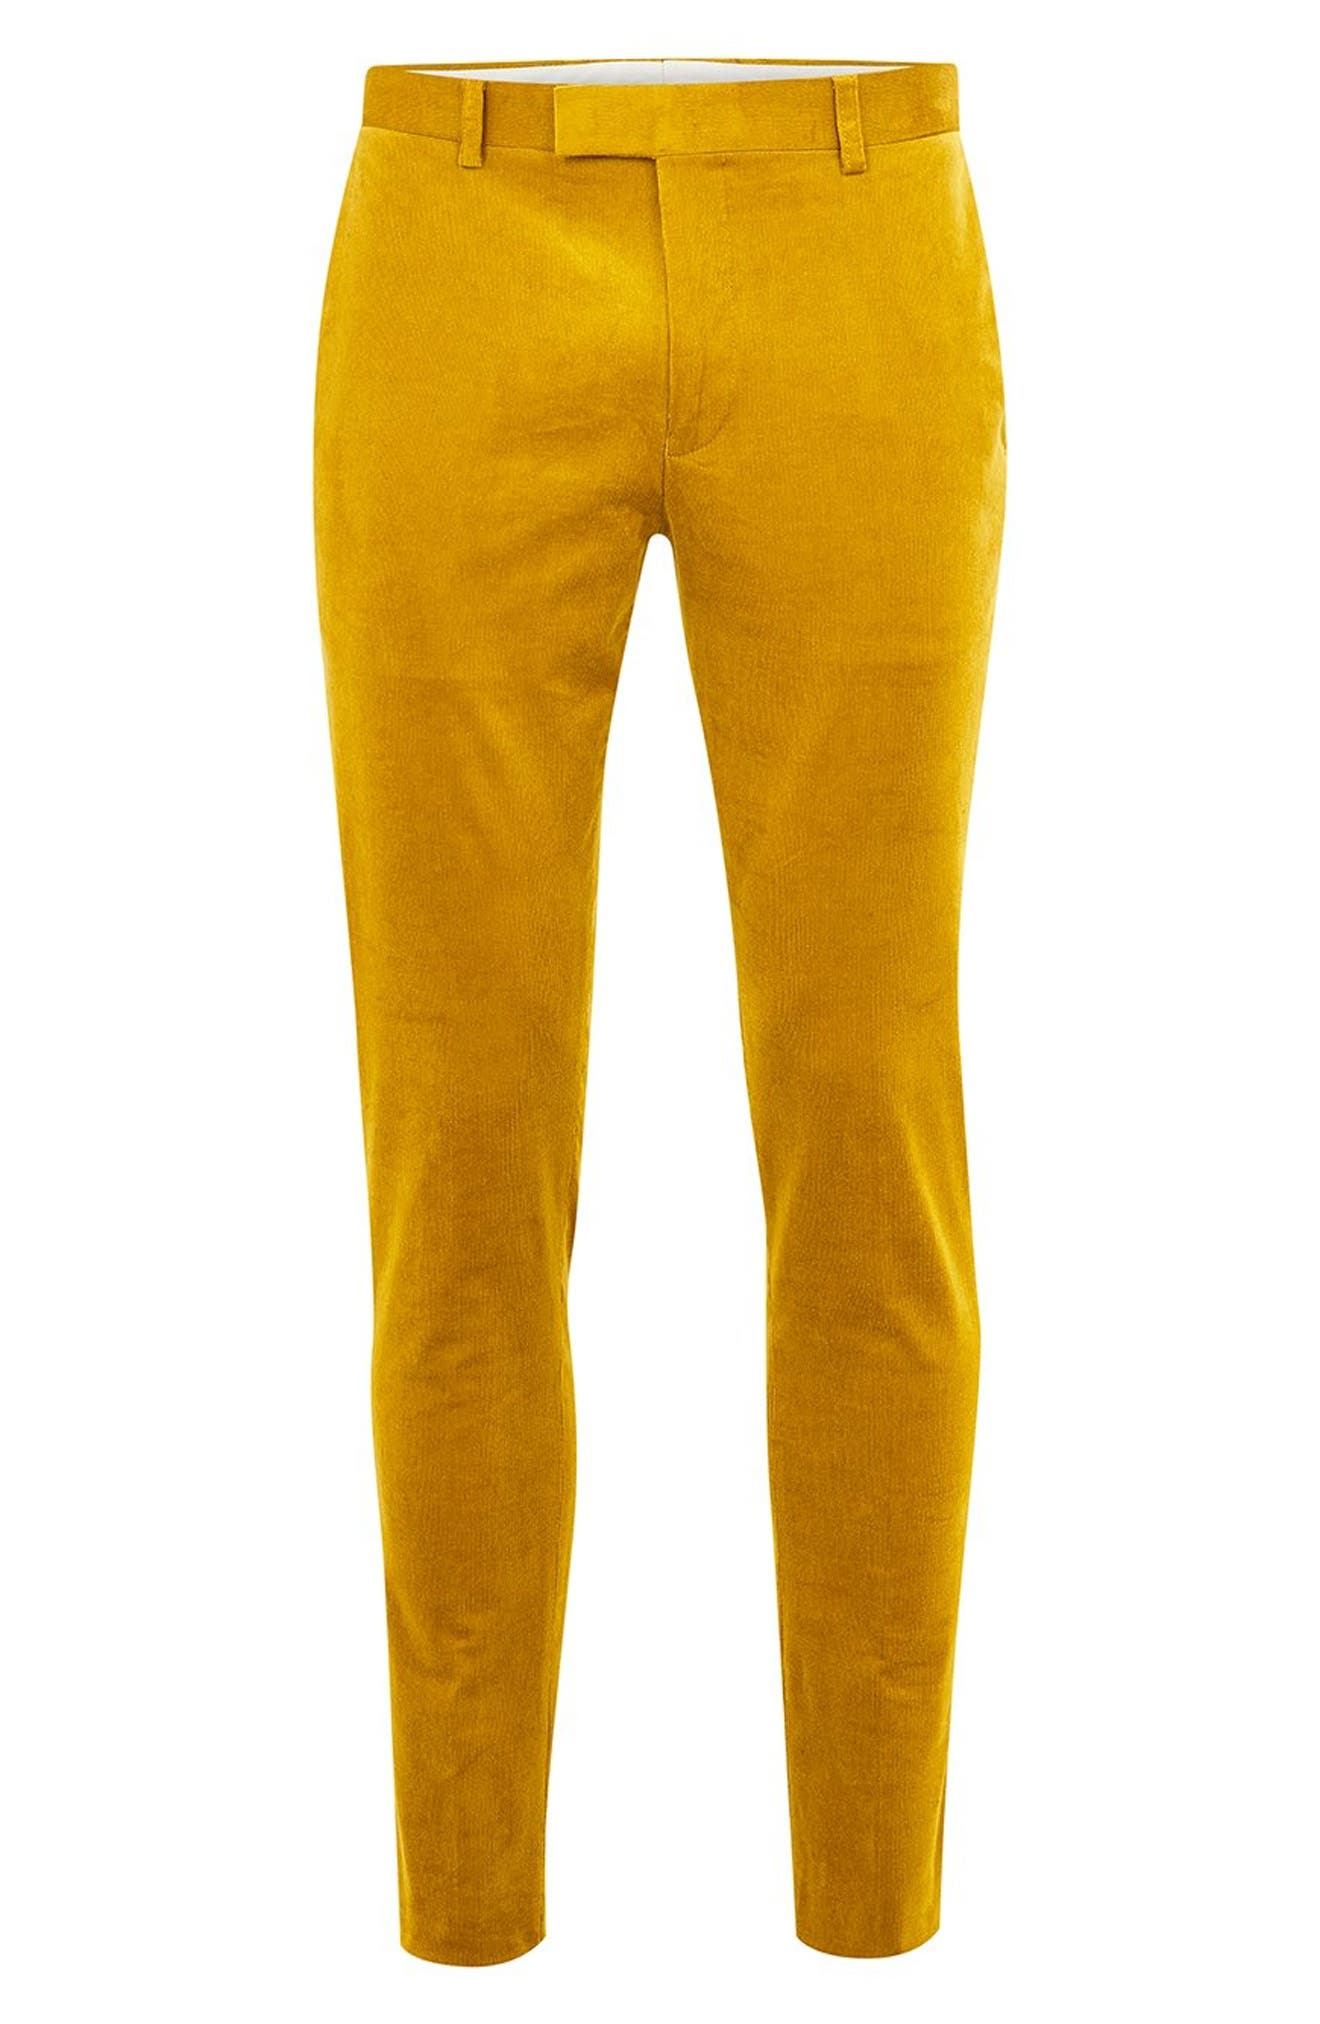 Super Skinny Fit Corduroy Trousers,                             Alternate thumbnail 4, color,                             YELLOW